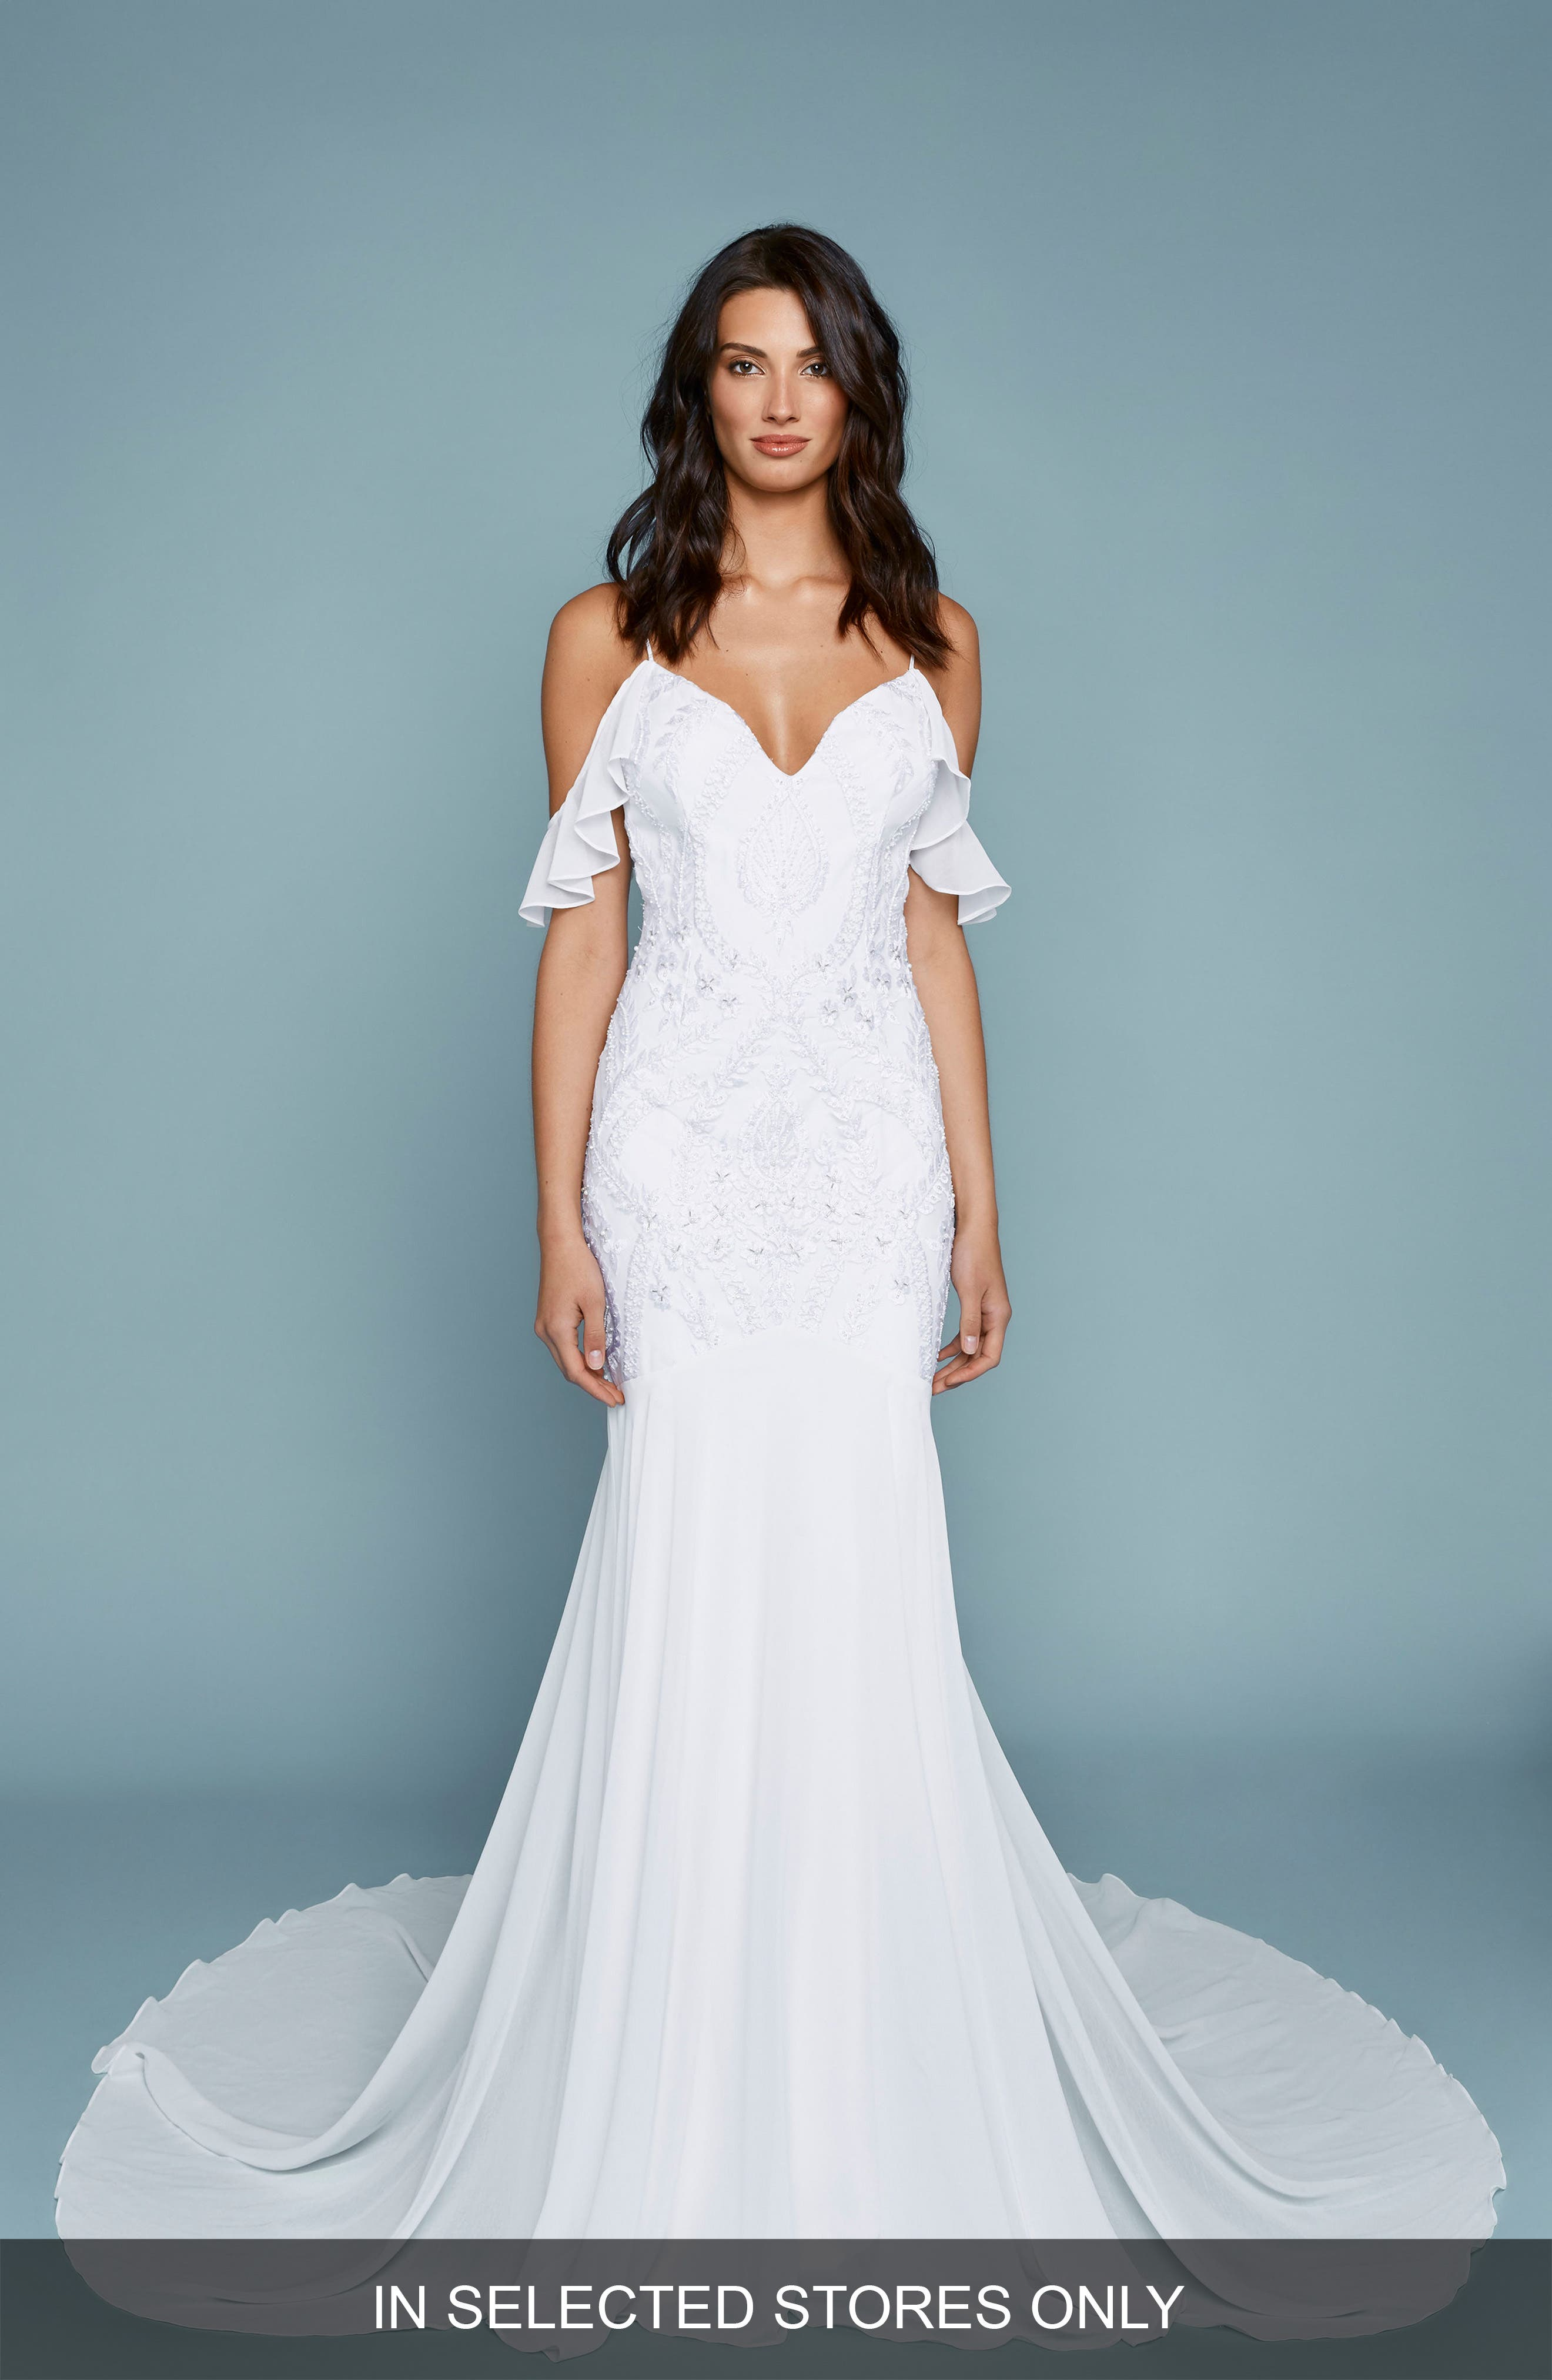 Tulum Embroidered Chiffon Off the Shoulder Mermaid Gown,                         Main,                         color, IVORY/ IVORY